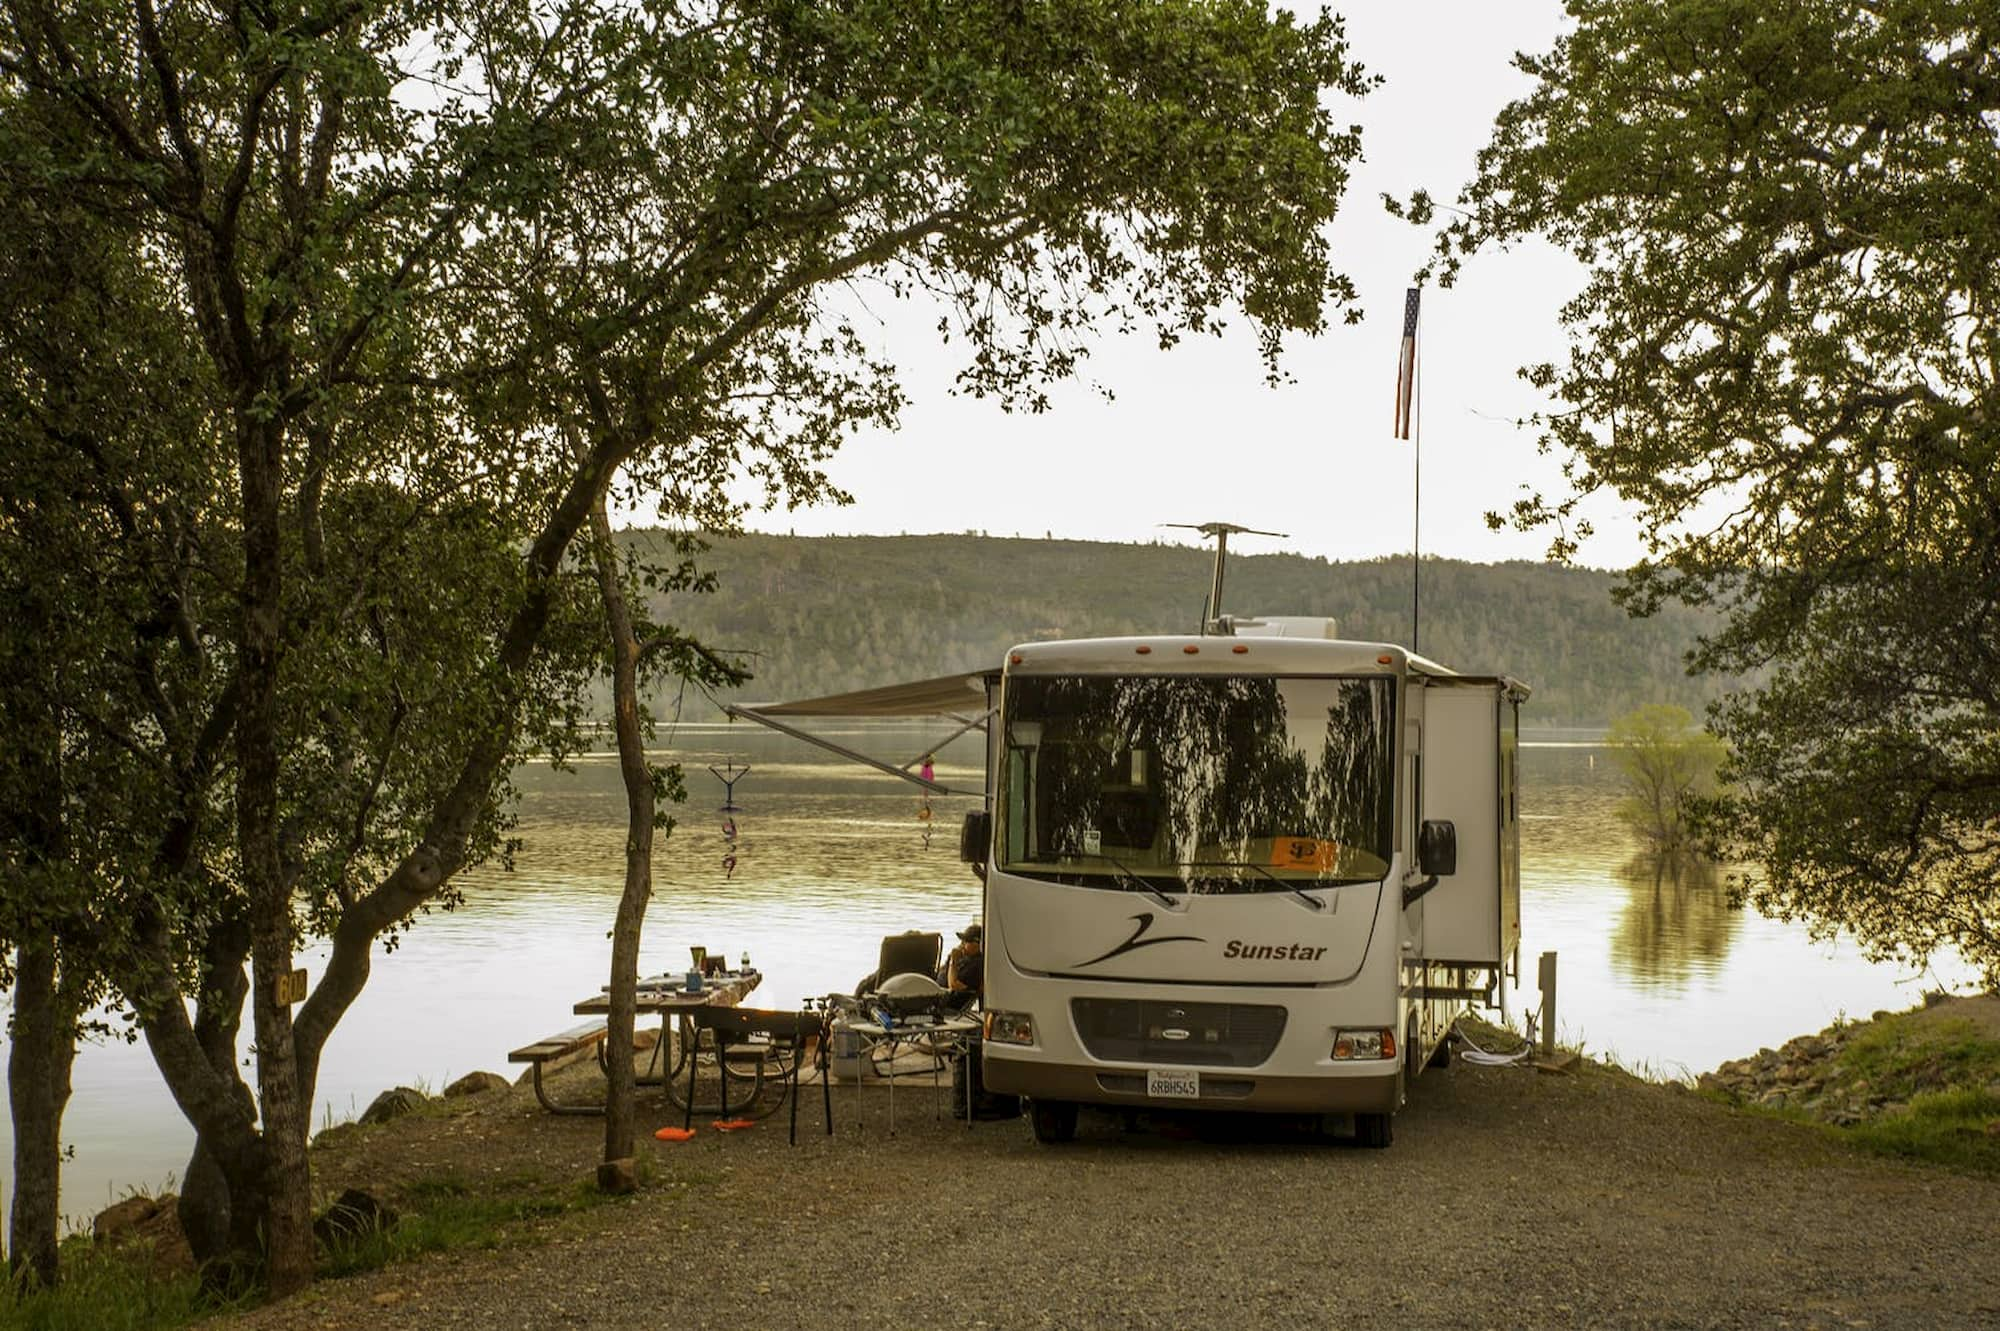 Camper parked beside water with people outside lounging in camp chairs.